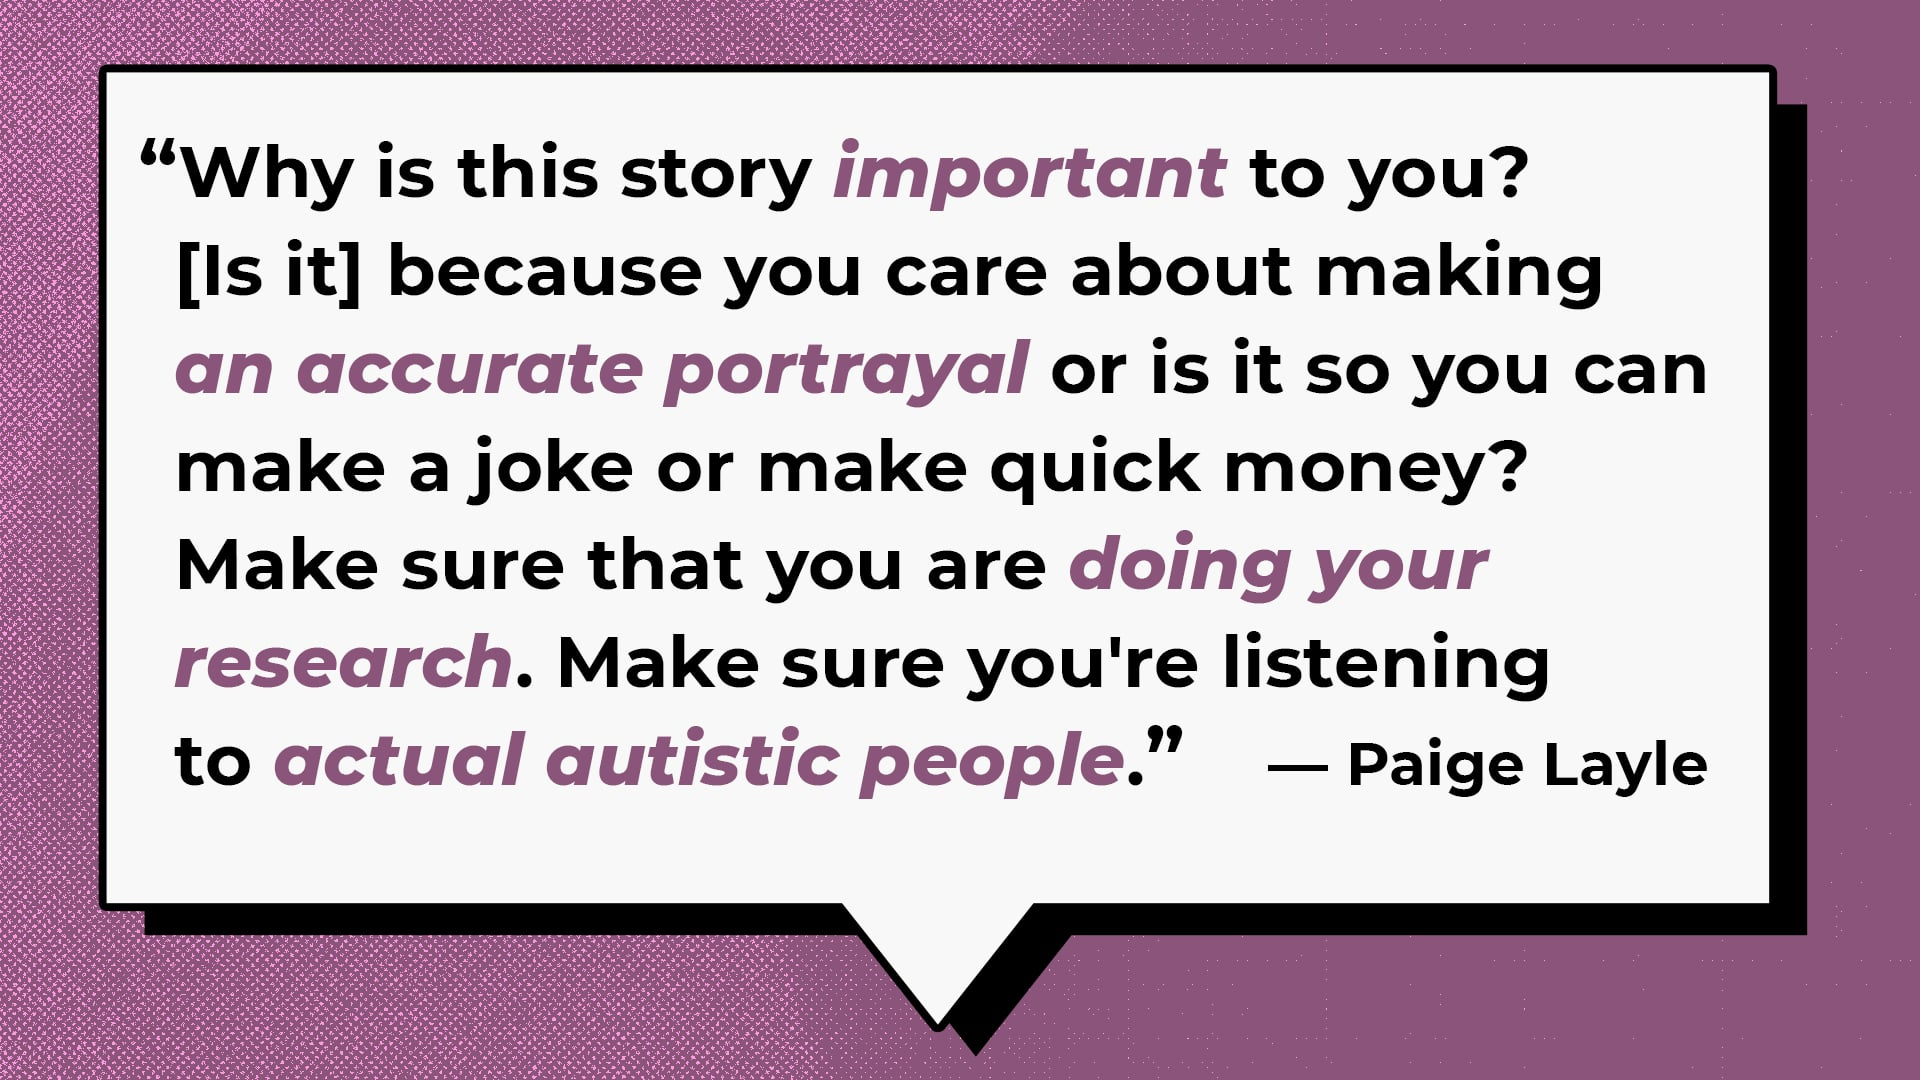 Why is this story important to you? Because you care about making an accurate portrayal or is it so you can make a joke or make quick money? Make sure that you are doing your research. Make sure you're listening to actual autistic people.— Paige Layle